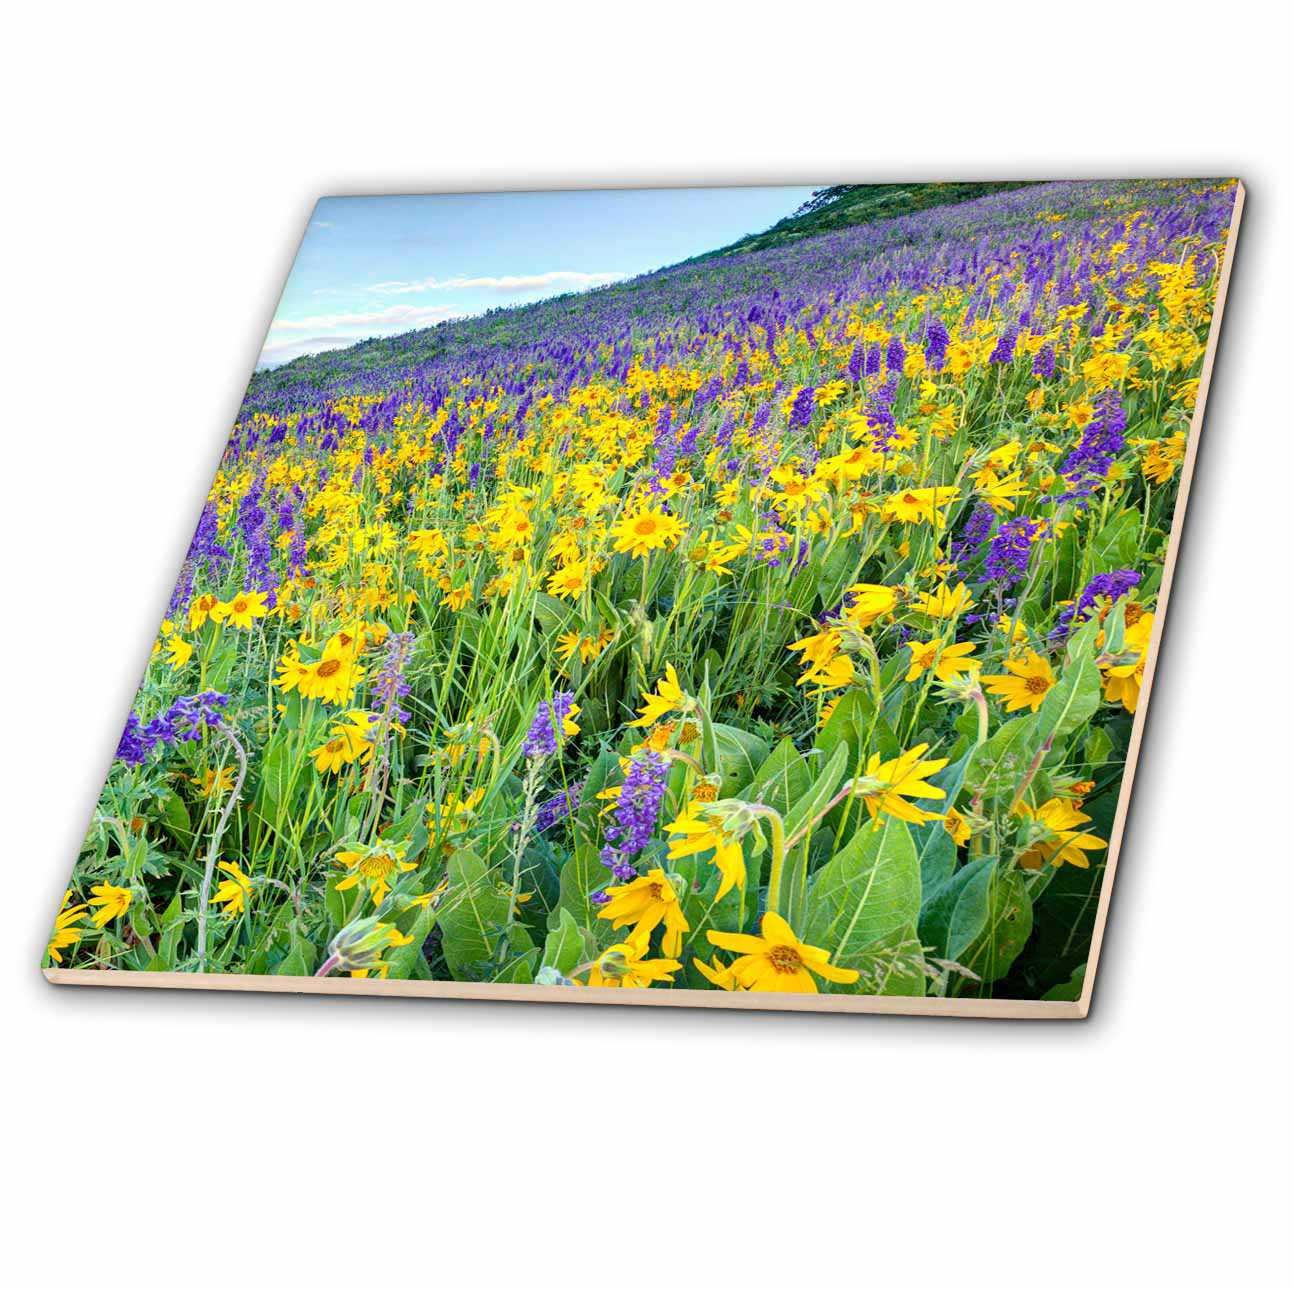 3dRose USA, Colorado, Crested Butte. Wildflowers covering hillside. - Ceramic Tile, 6-inch